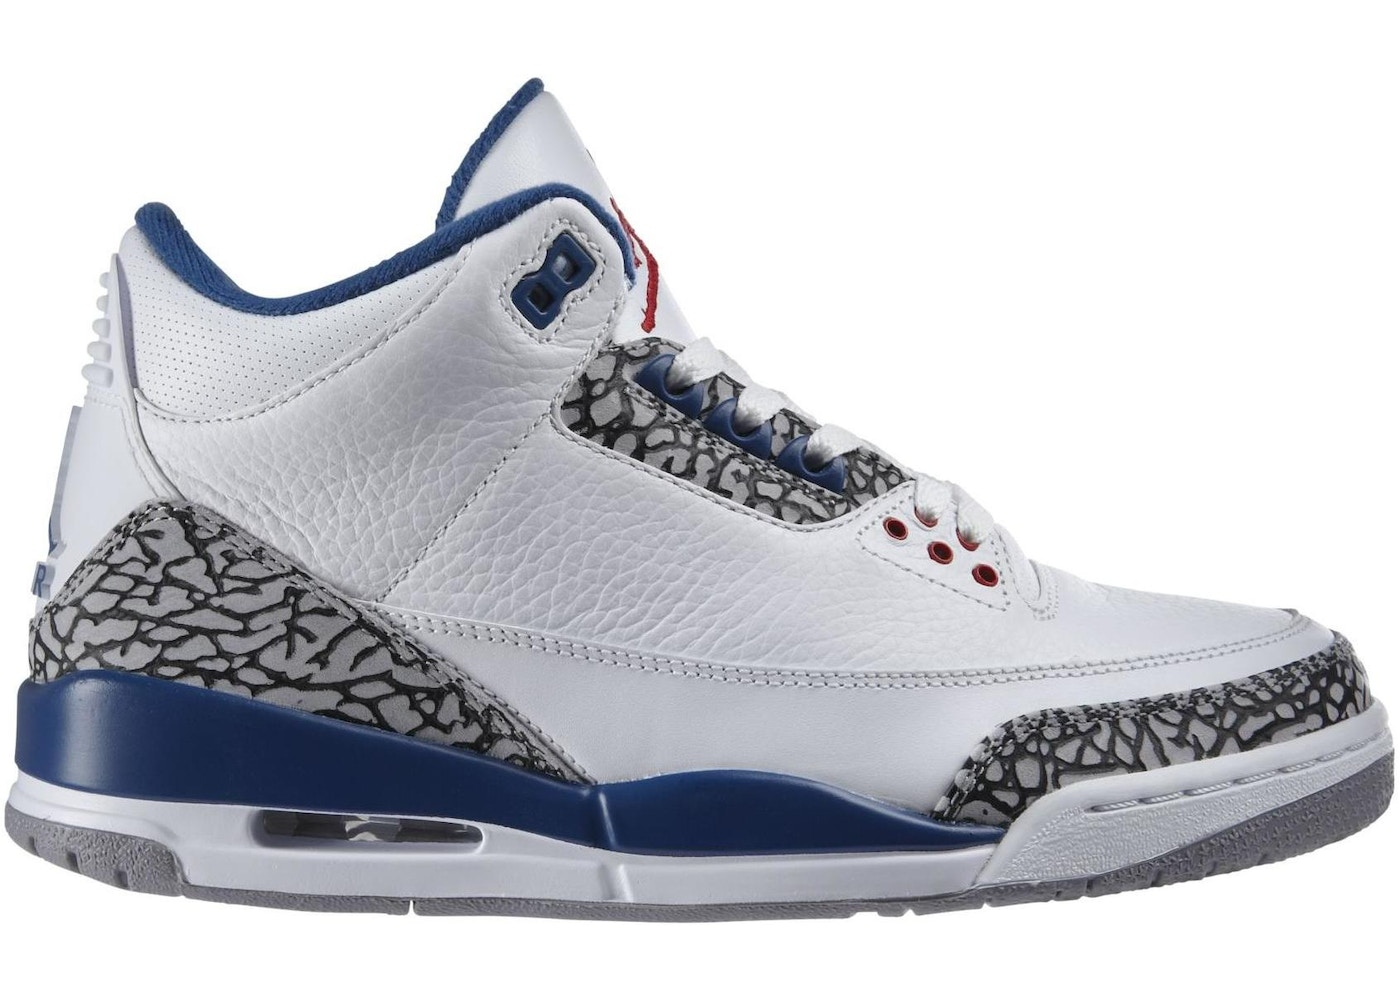 0b64b1962ac Jordan 3 Retro True Blue (2001) - 136064-141